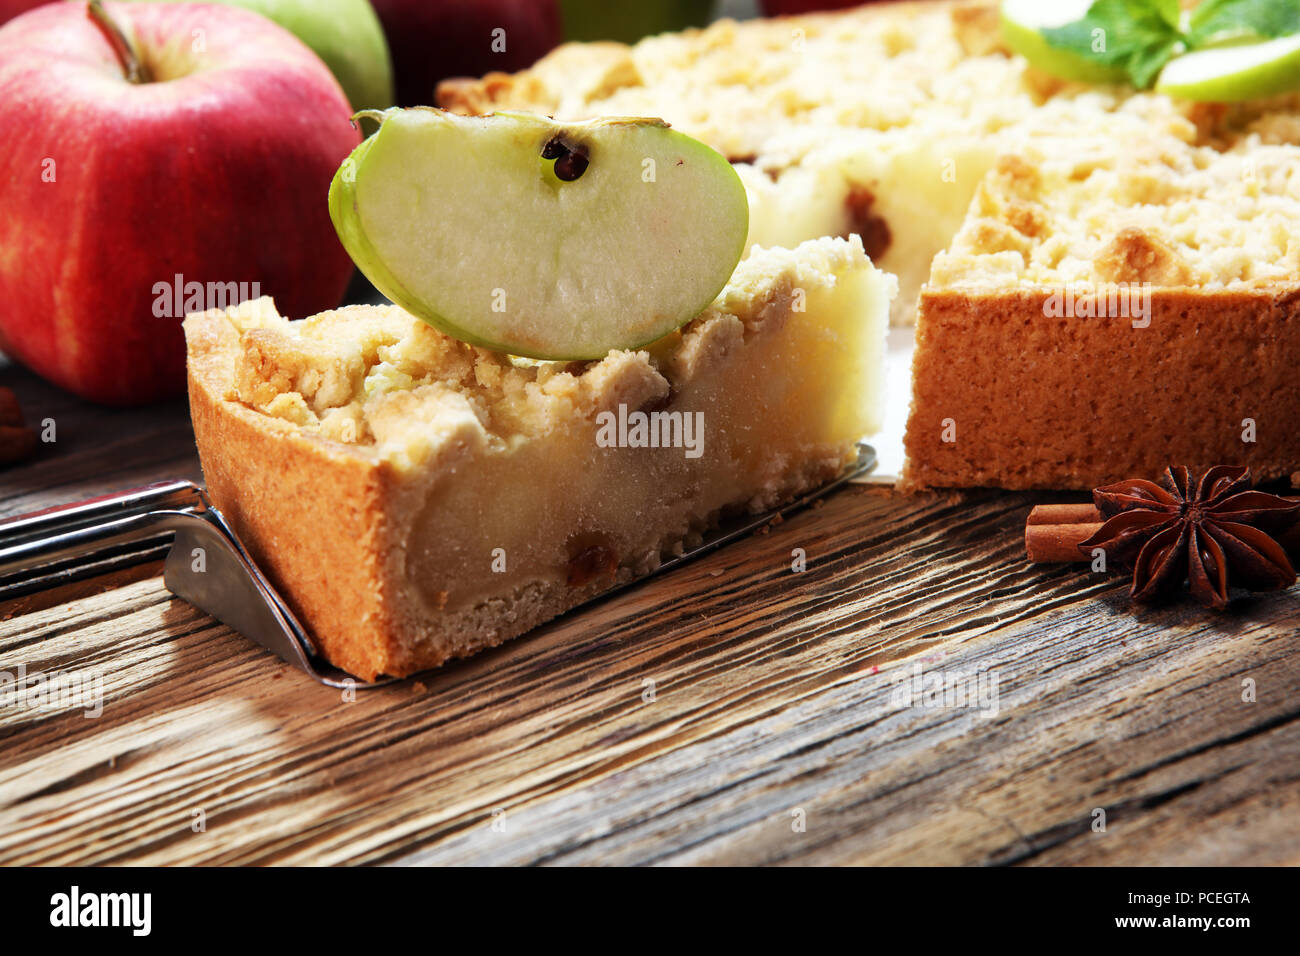 Apple Pie Or Homemade Cake With Apples Delicous Dessert Apple Tart Stock Photo Alamy